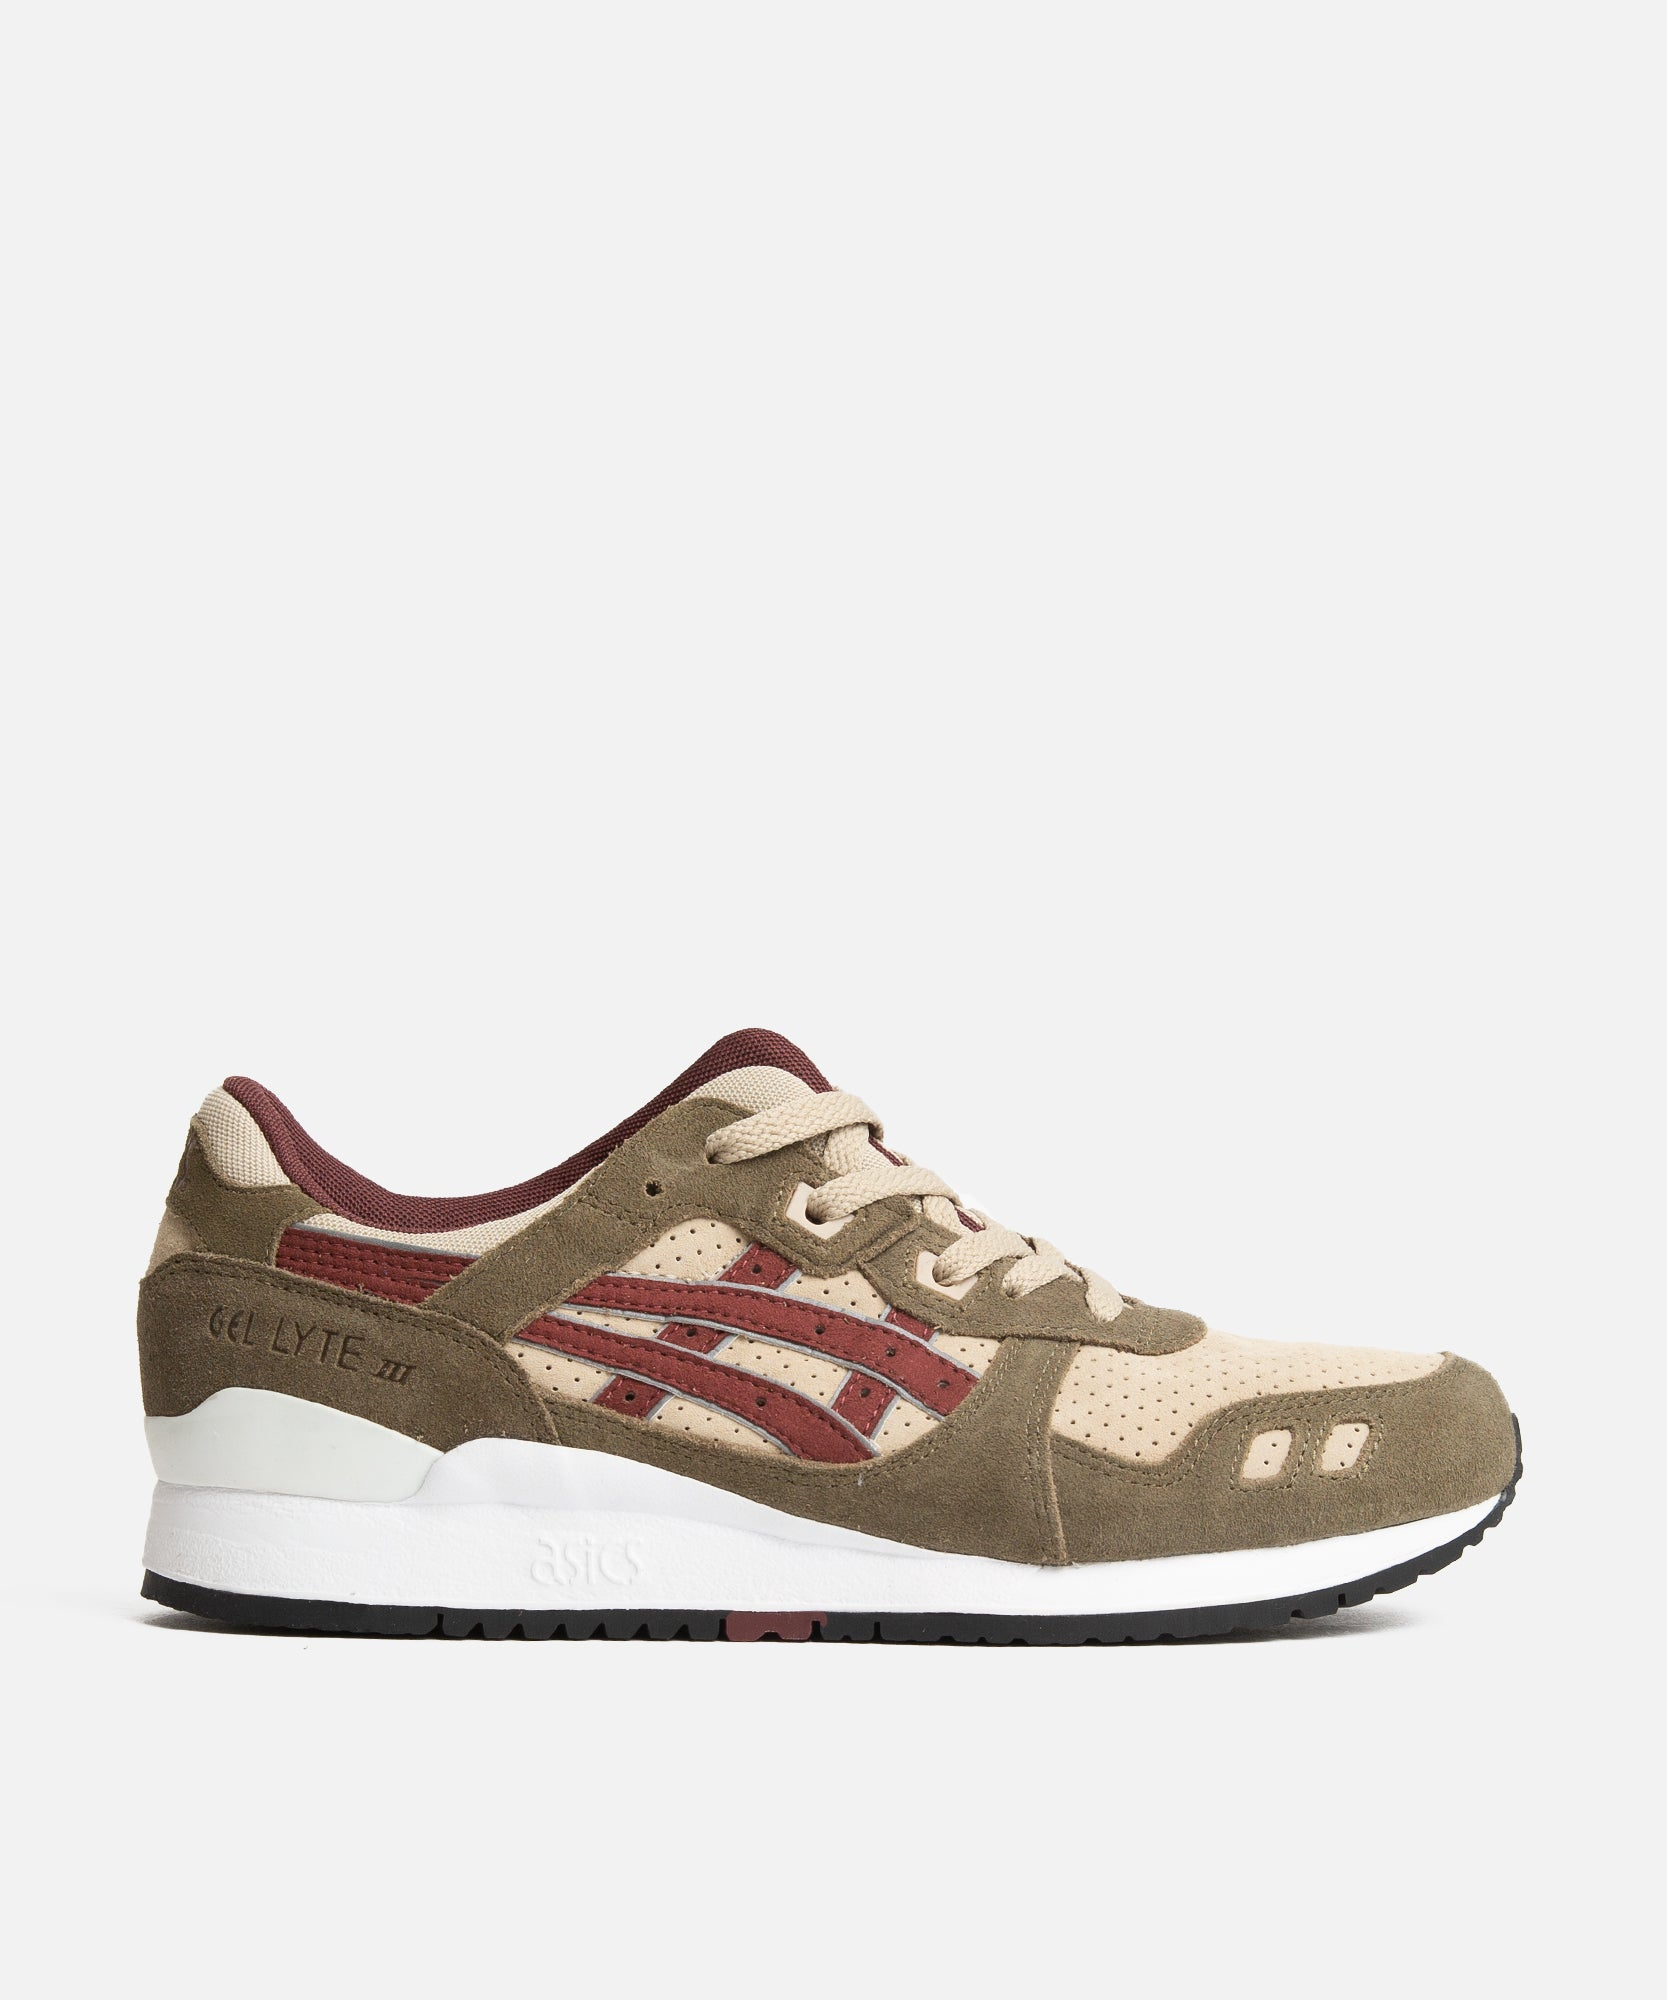 ASICS Gel-Lyte III (Birch/Burgundy)